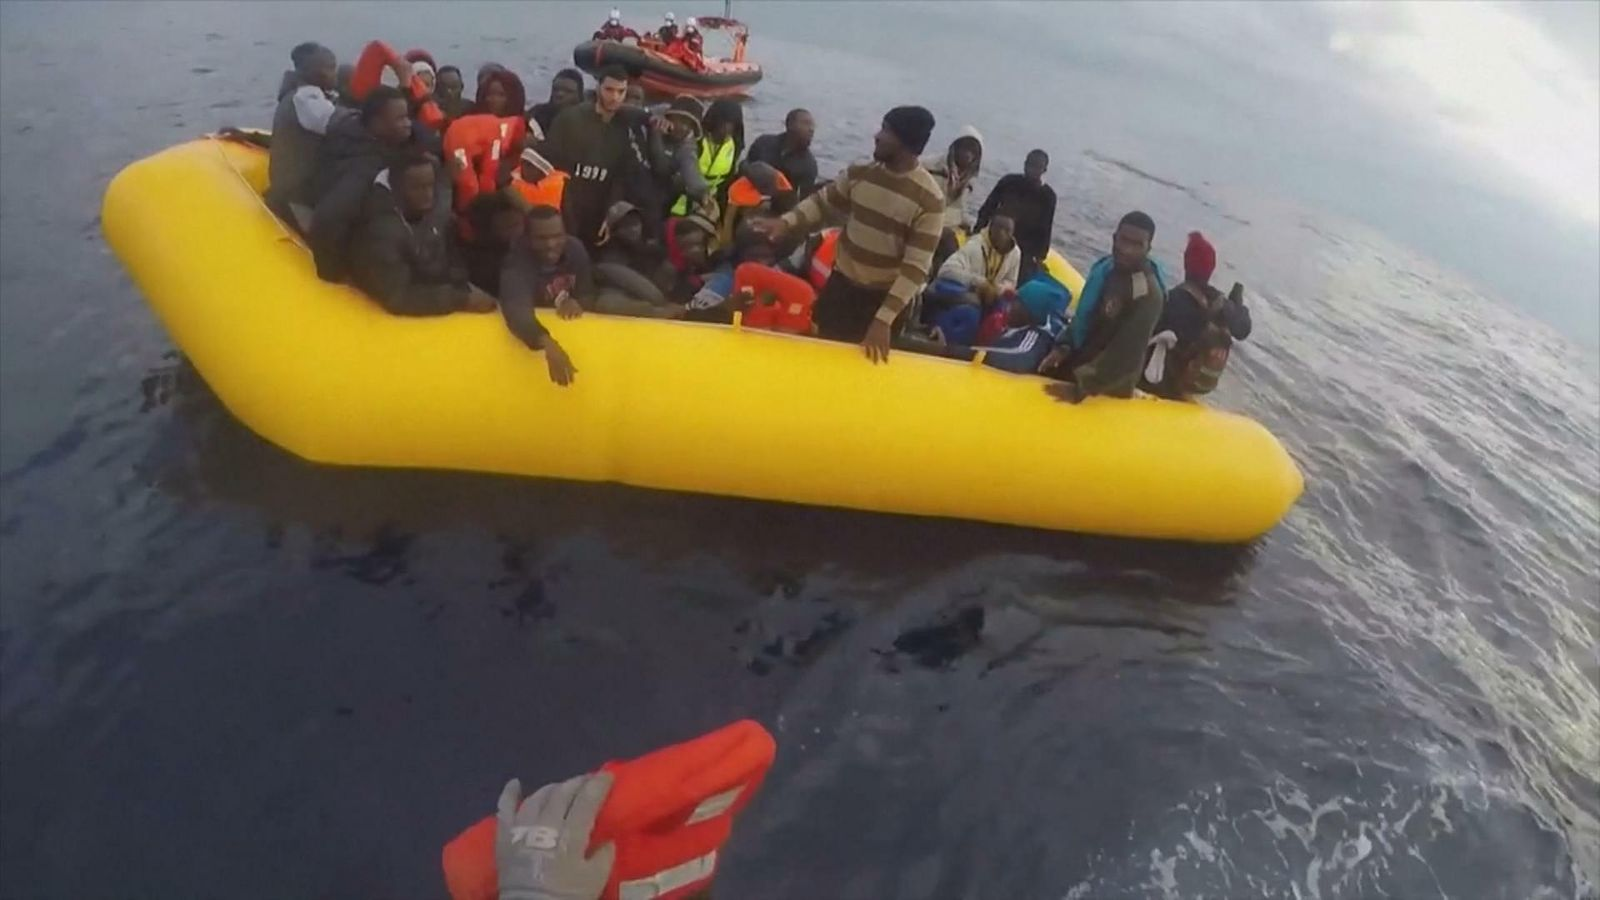 363 migrants rescued in three days | World News - Sky News